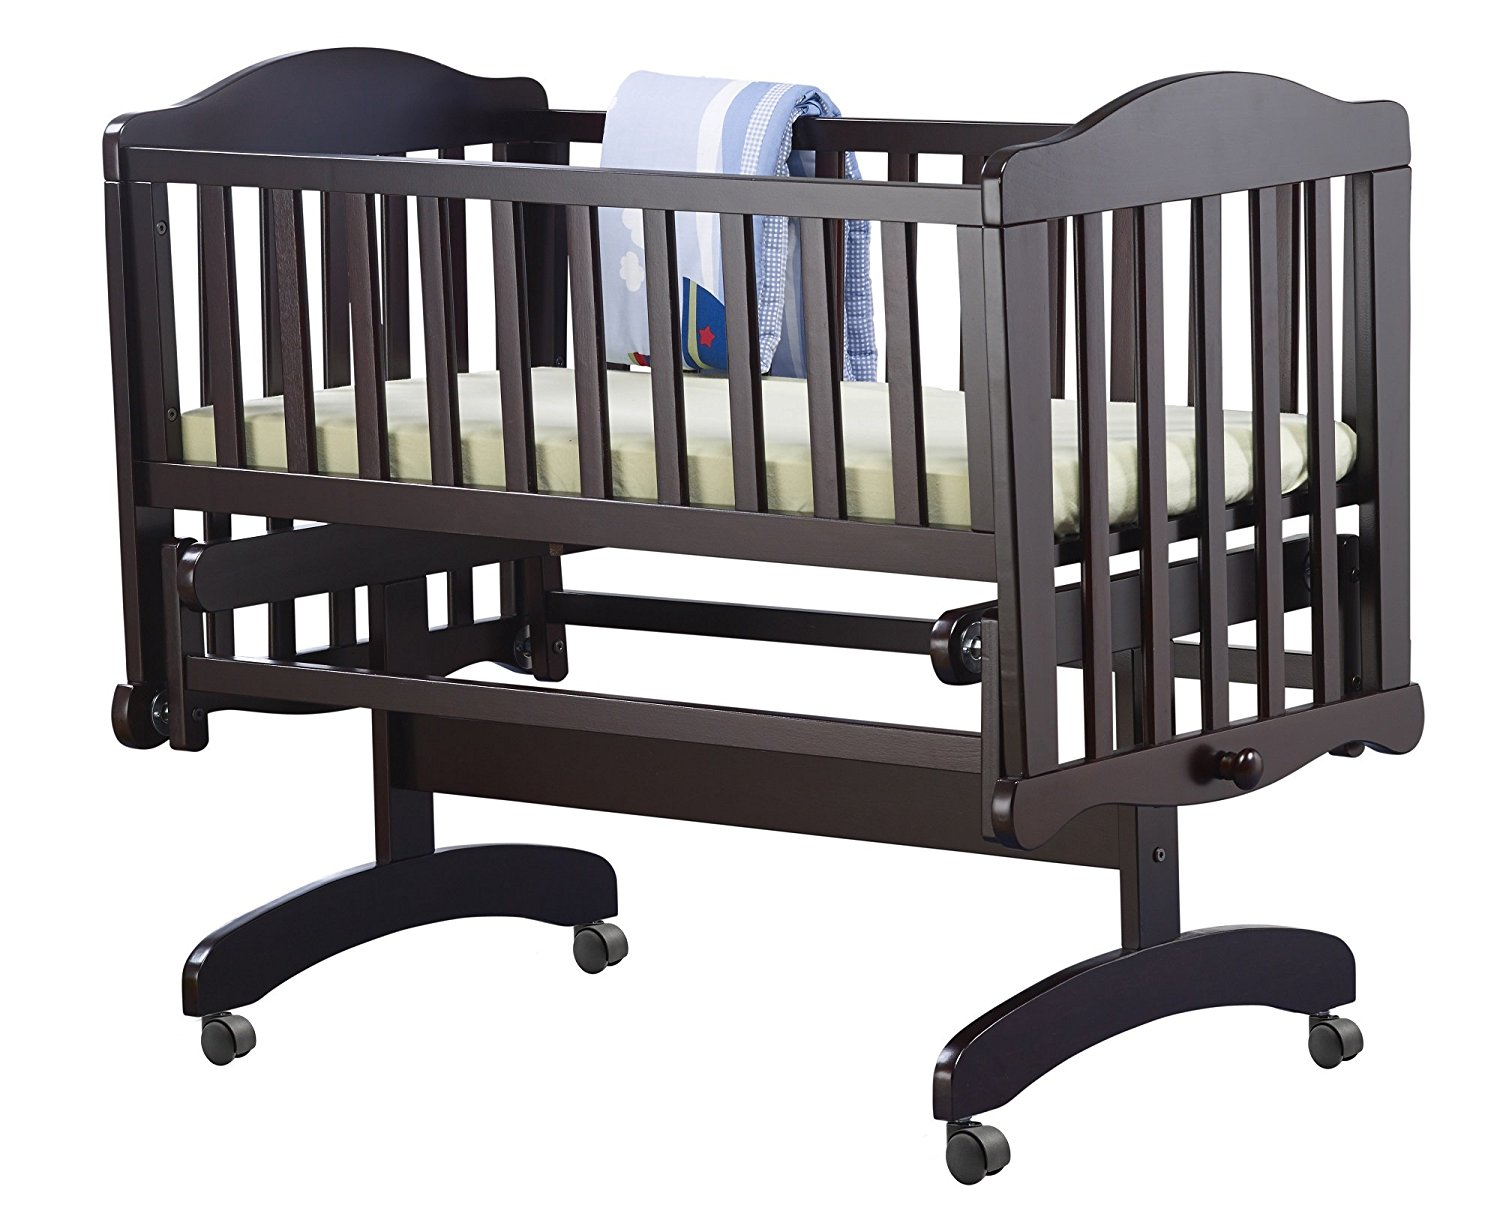 Sorelle Dondola Cradle with Wheels